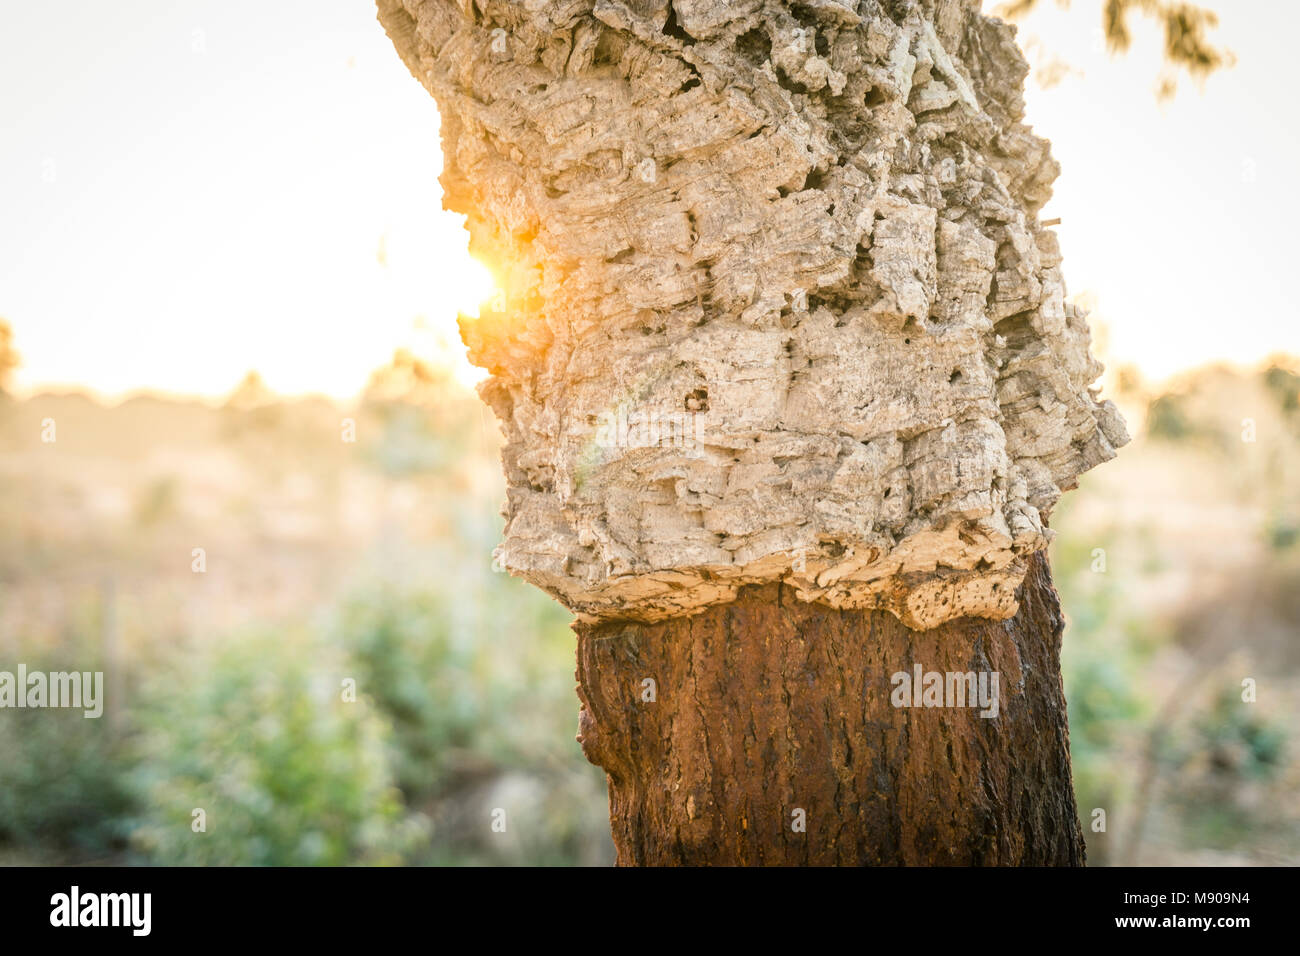 Cork tree with and without the outer layer of the bark, which can be stripped without harming the tree. - Stock Image